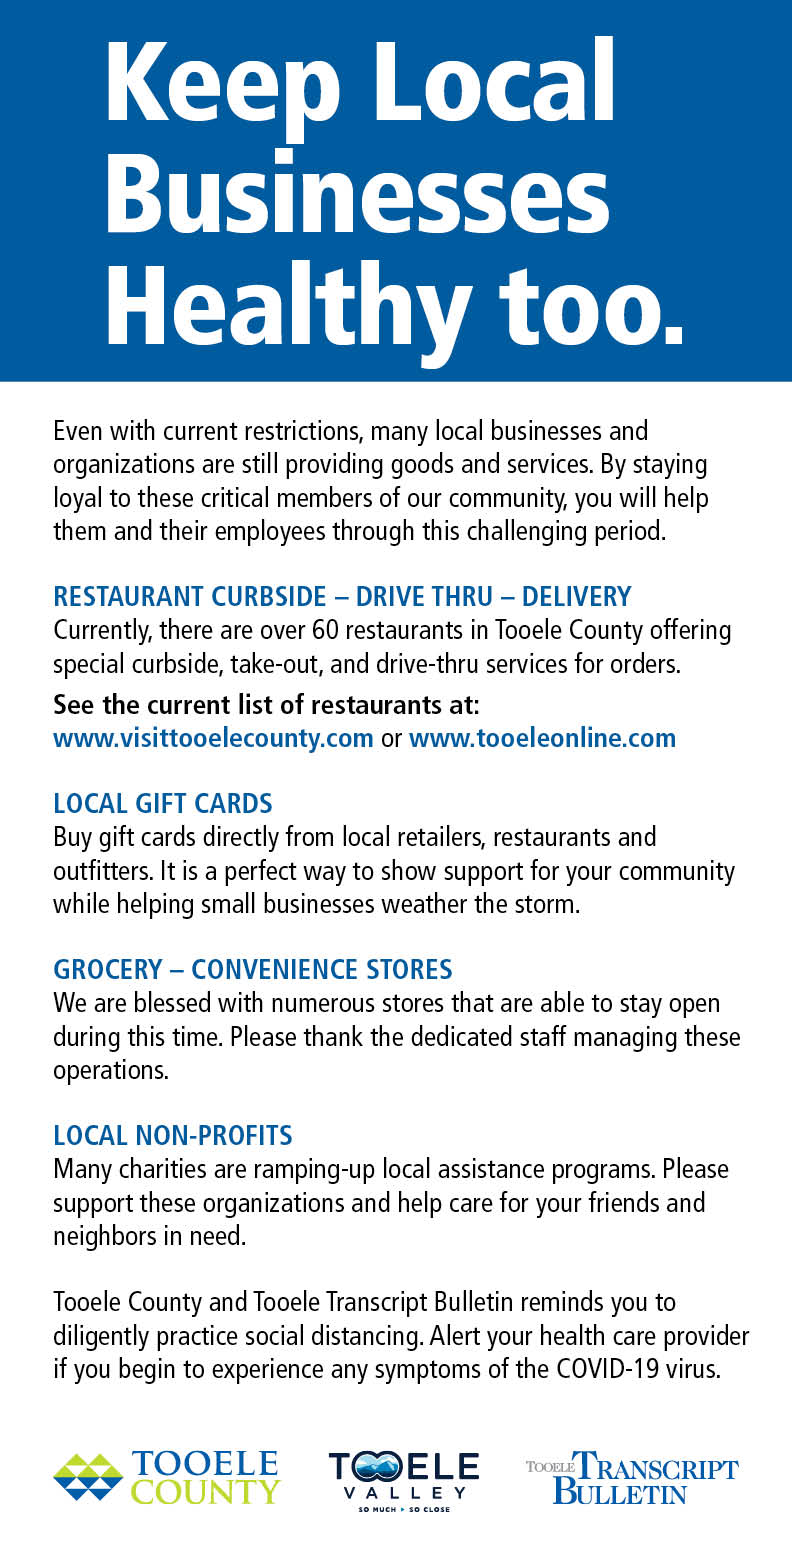 Keep Local Businesses Healthy Too 2020